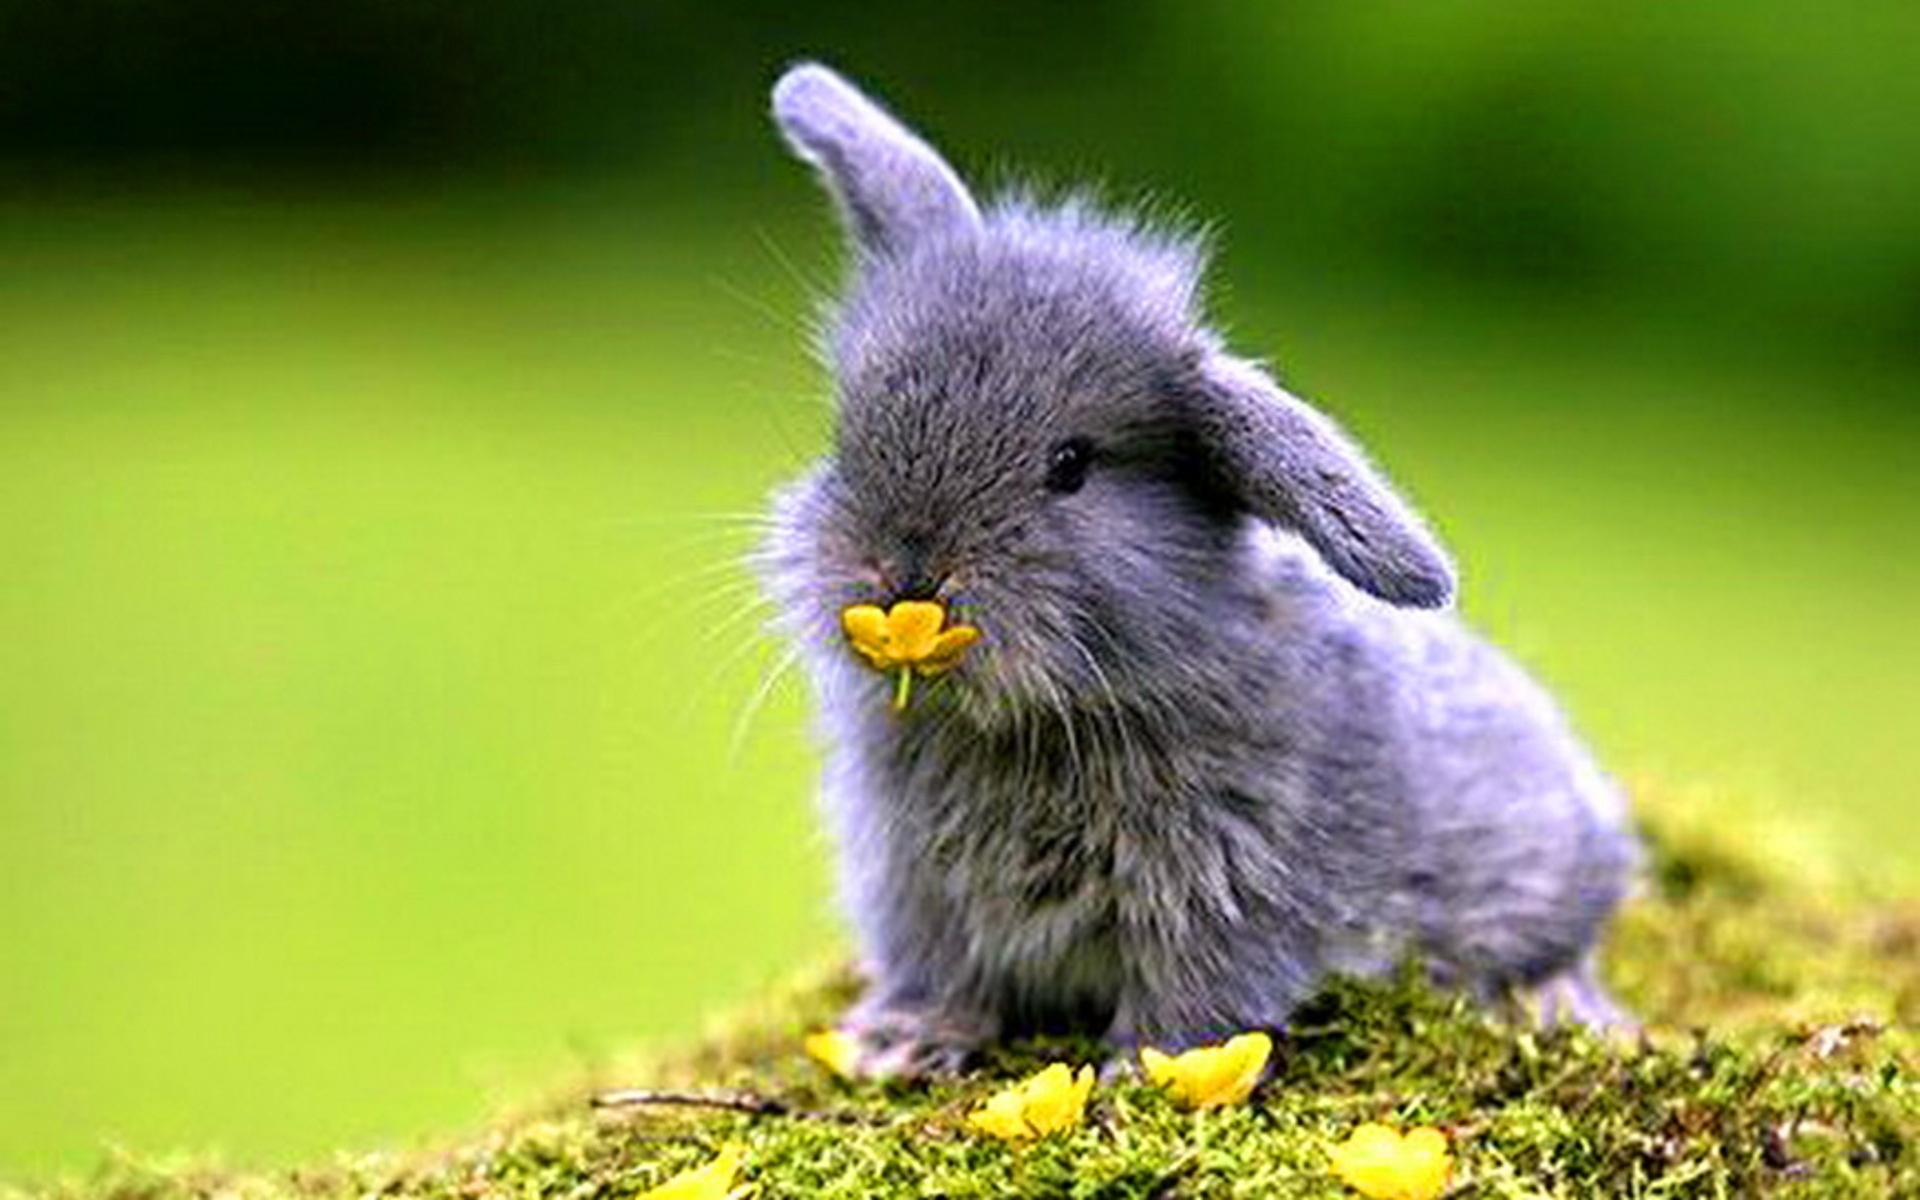 27370 download wallpaper Animals, Rabbits screensavers and pictures for free